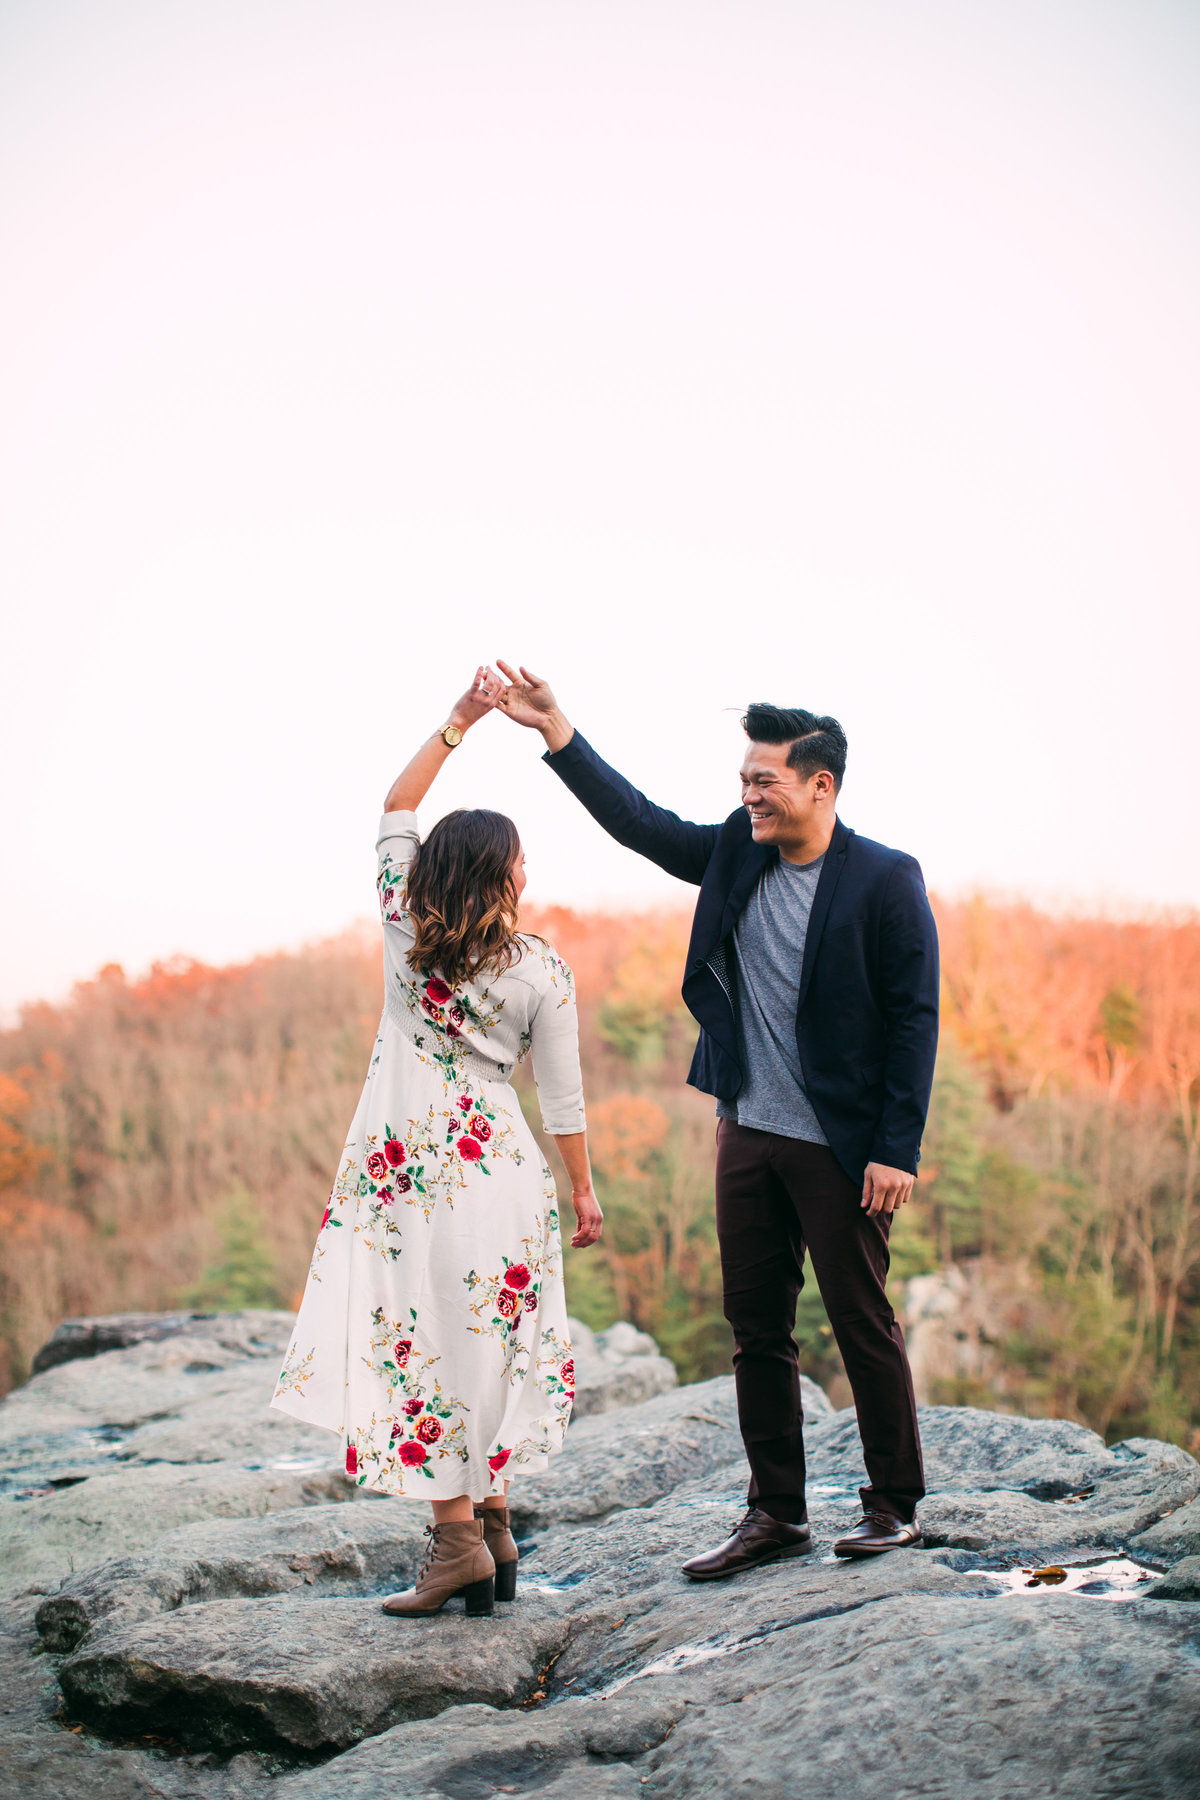 Engagement session in DMV